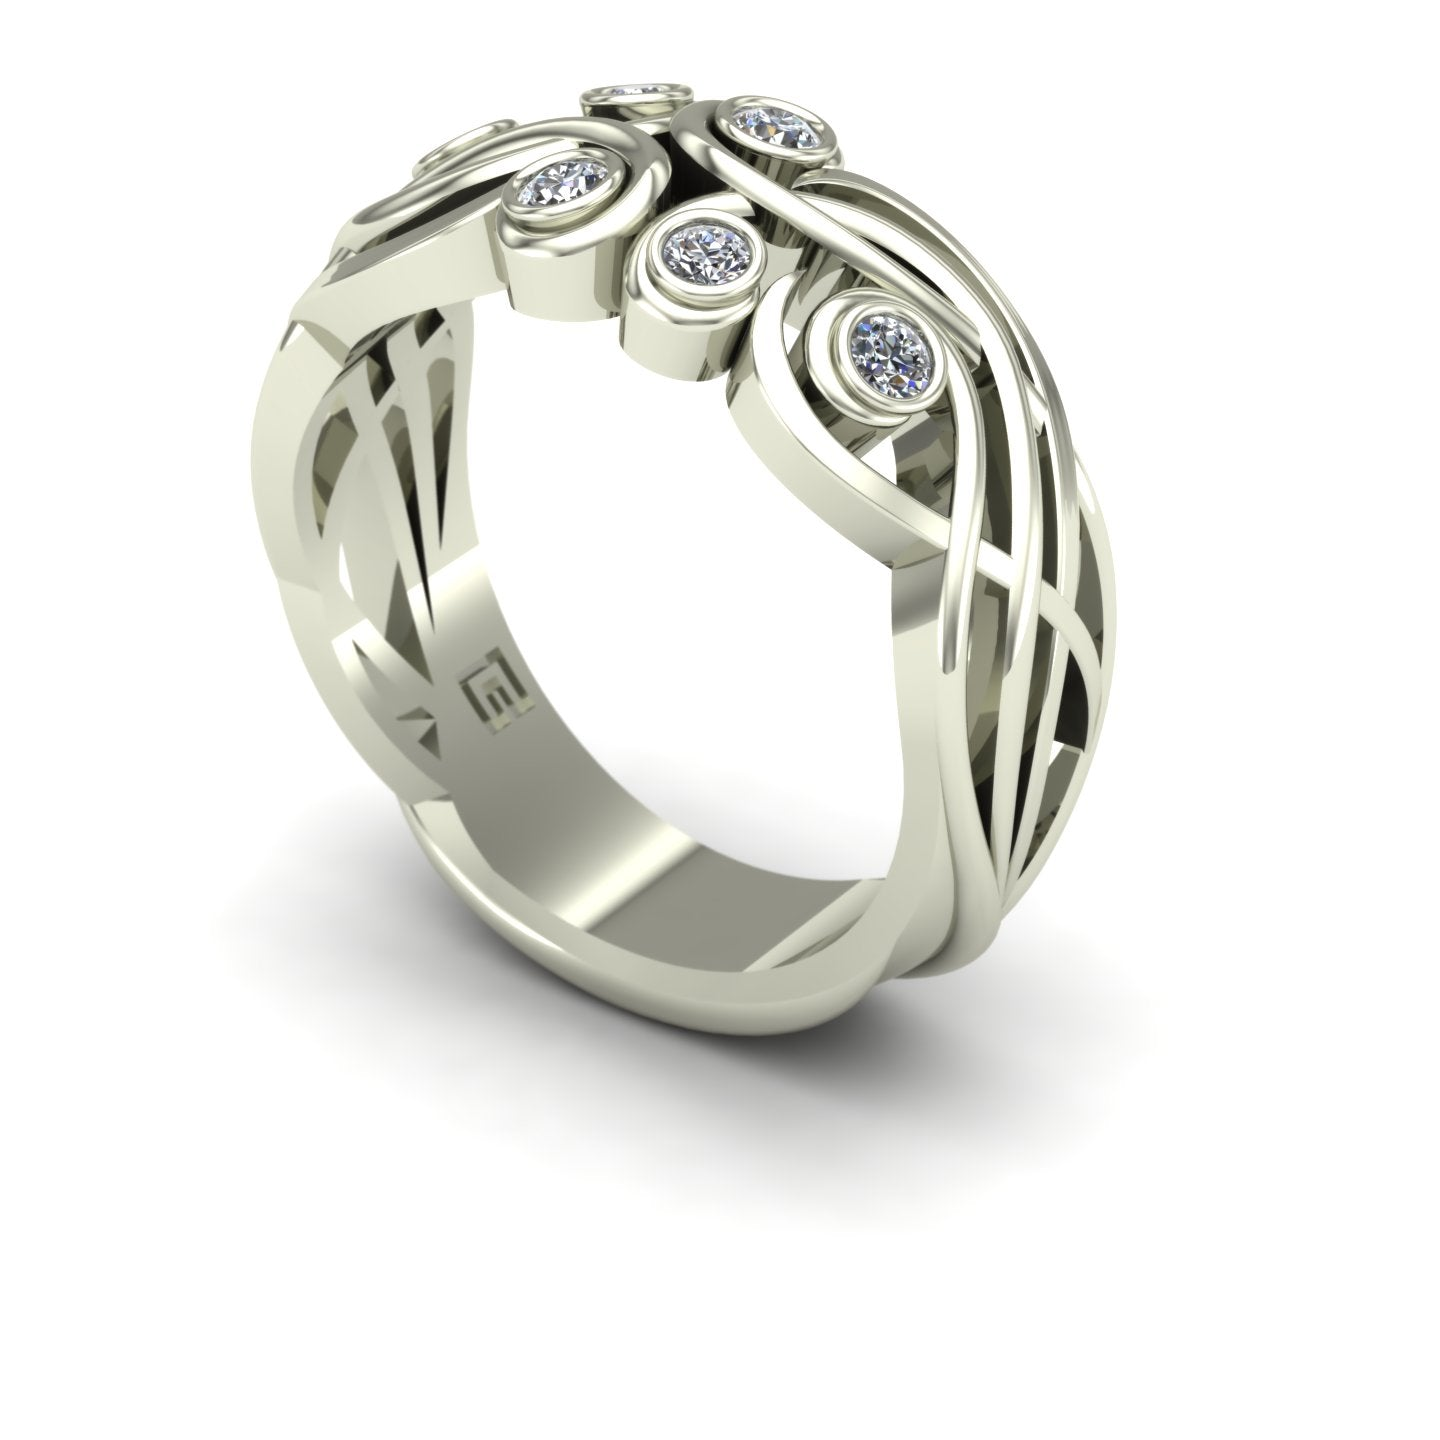 Diamond elf filigree scroll wedding band in 14k white gold